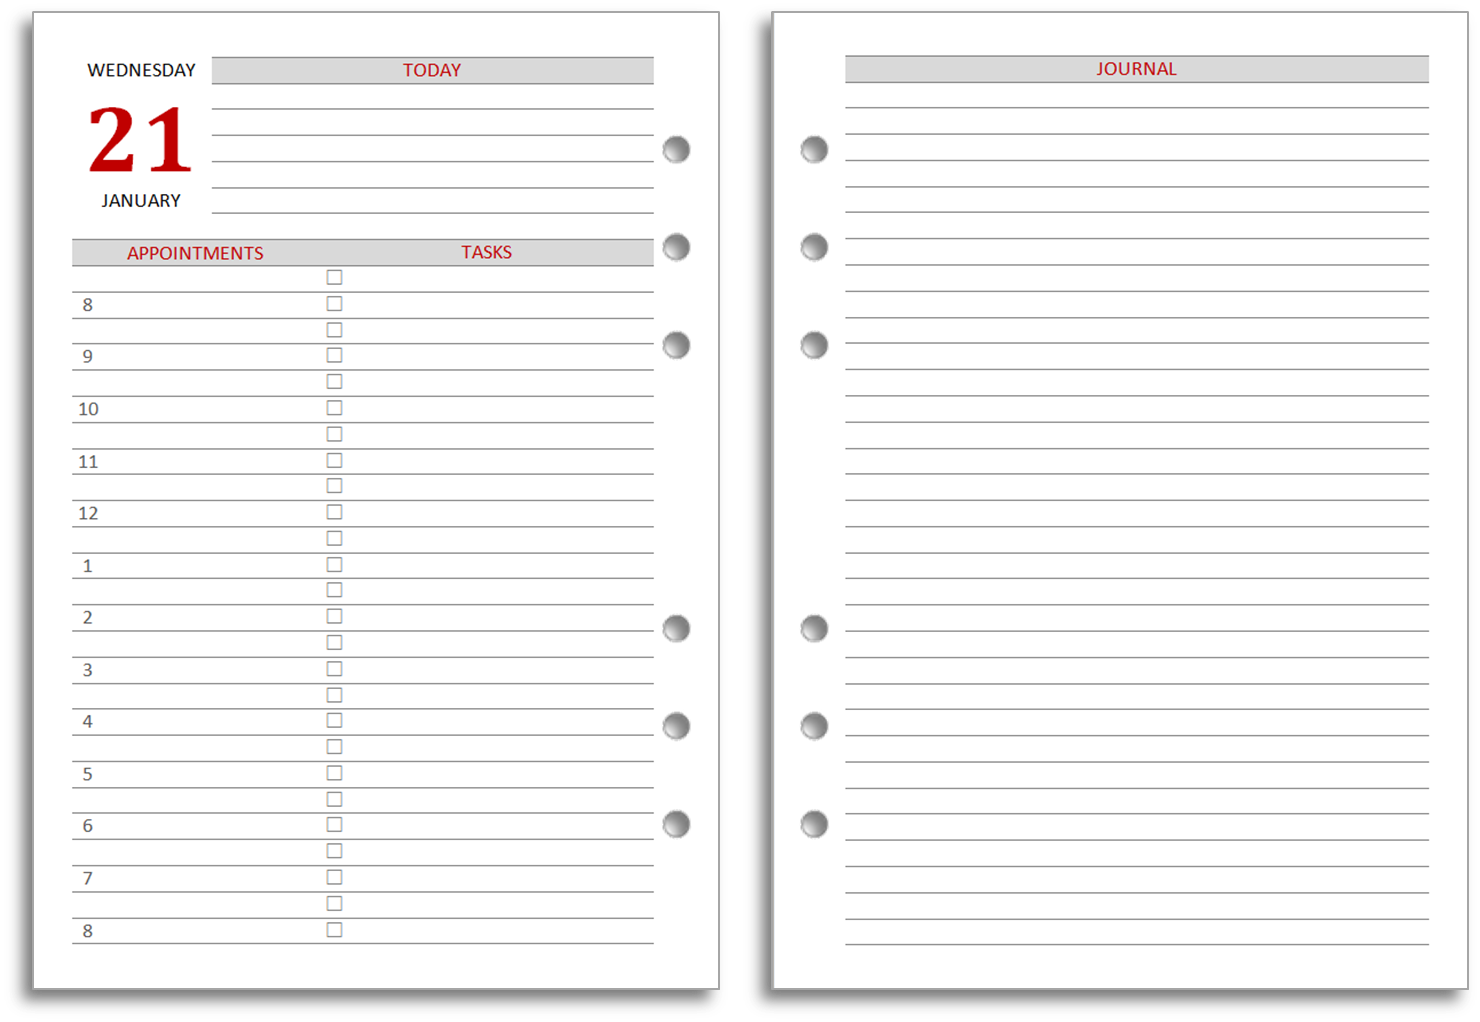 Daily Calendar Journal Template Printable Editable Blank – Printable Daily Calendar